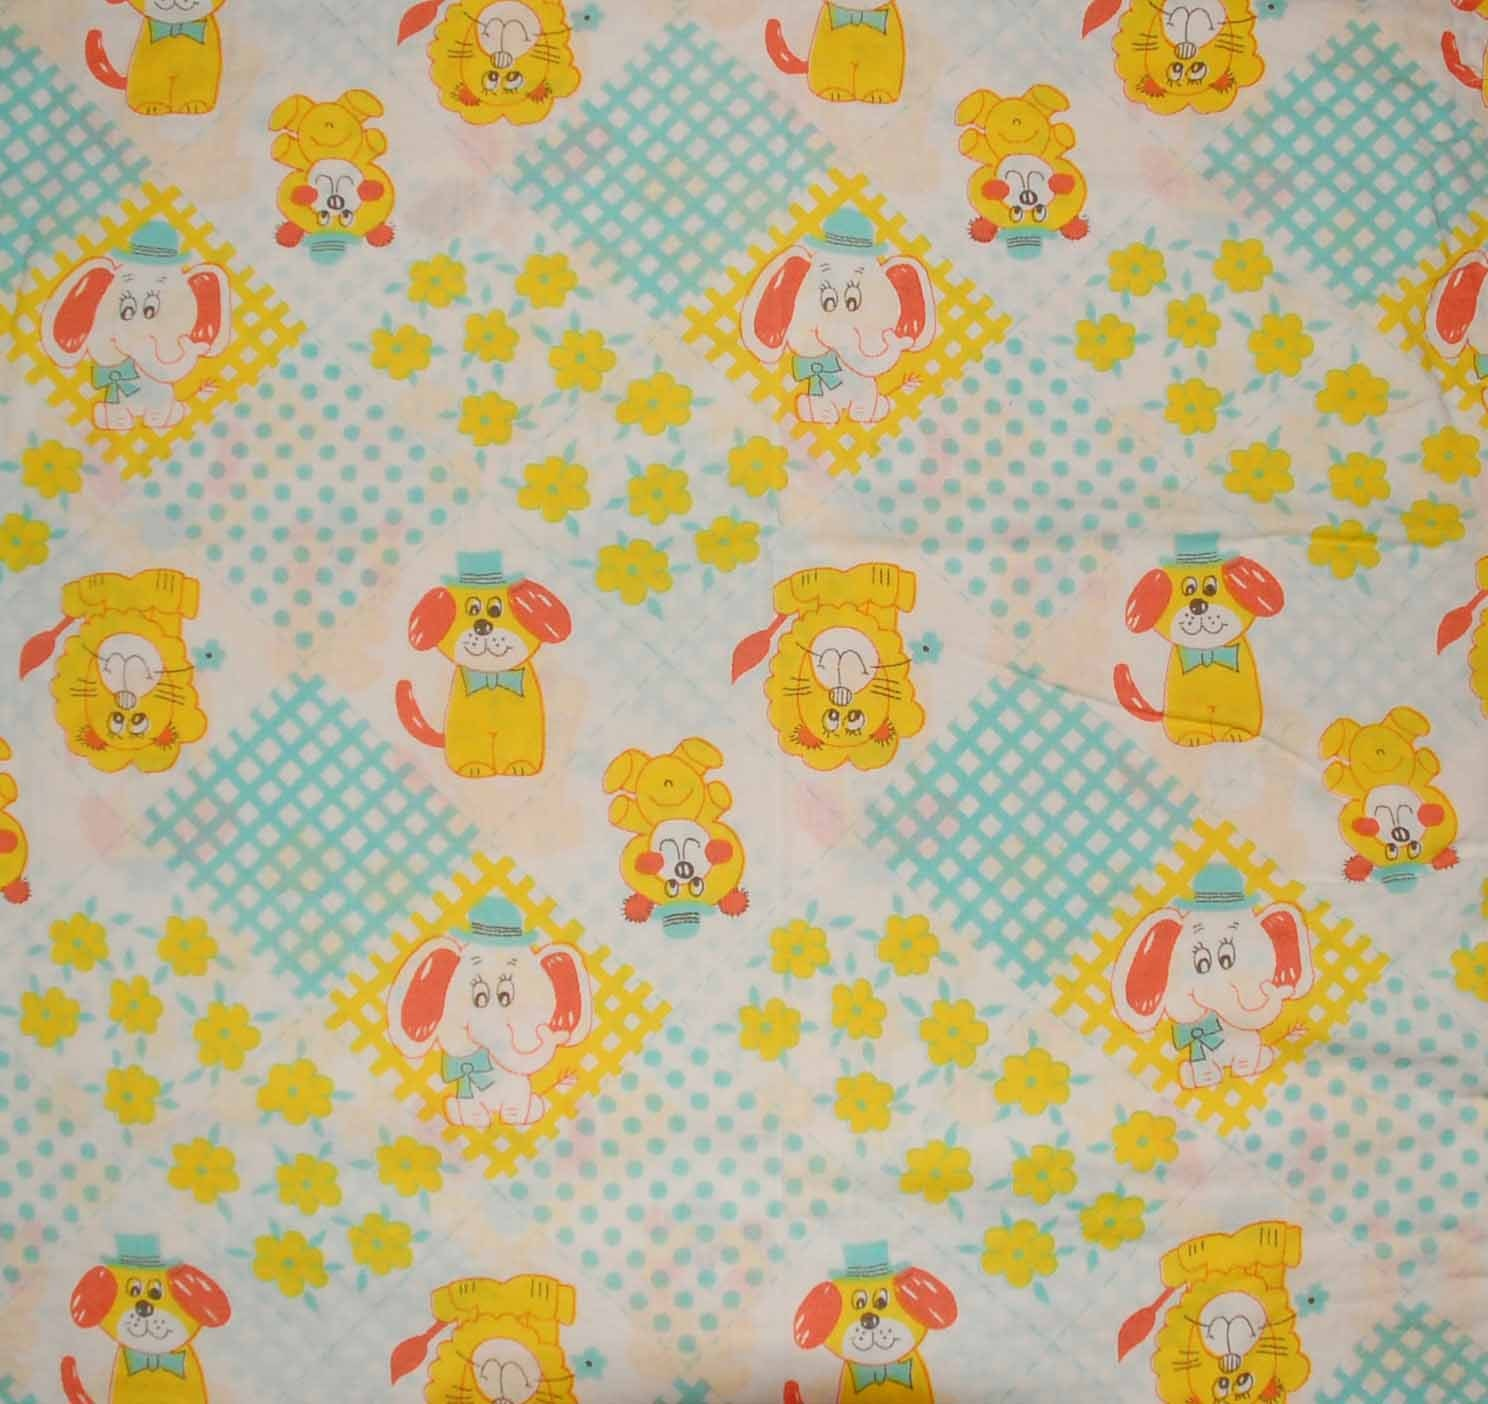 Vintage children fabric by frubach on etsy for Retro kids fabric